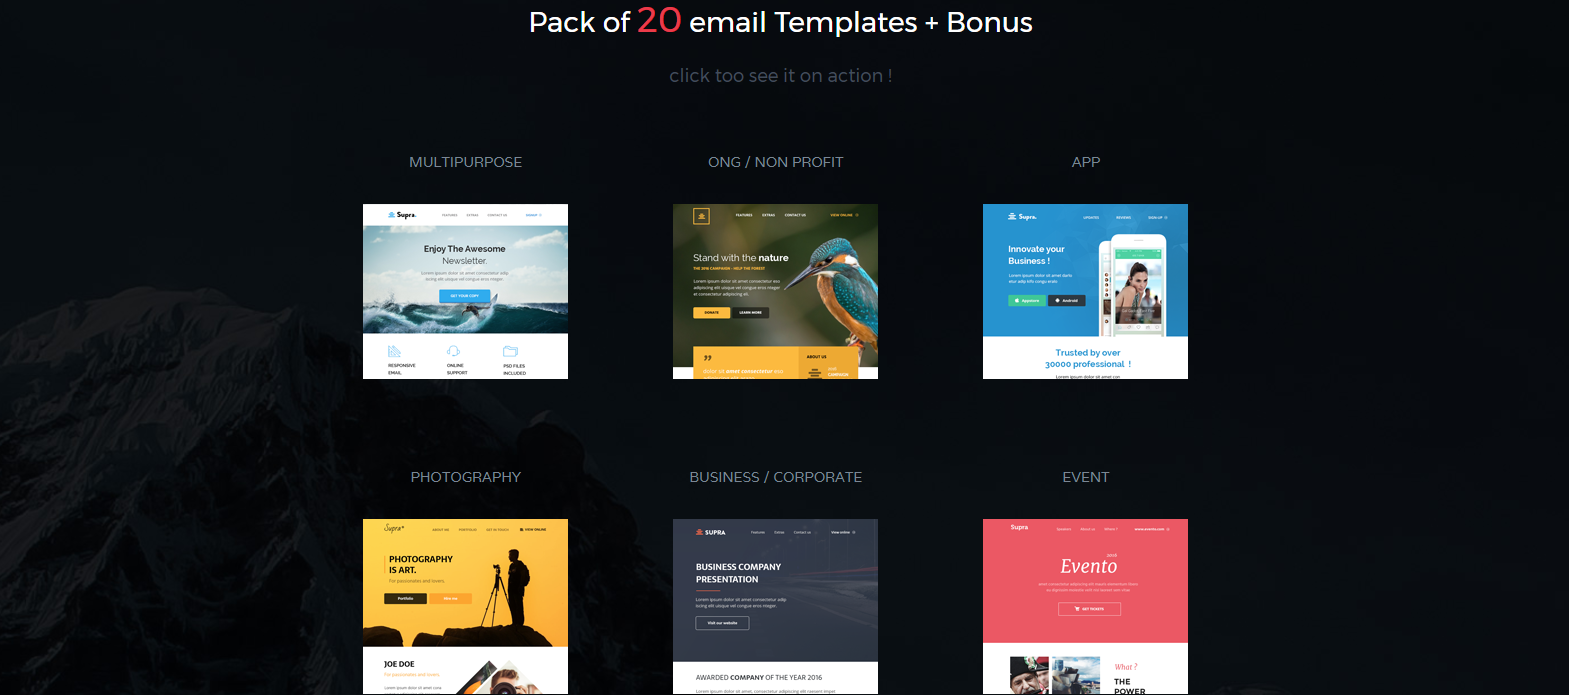 Best MailChimp Templates That Are Aesthetically Pleasing - Buy mailchimp templates